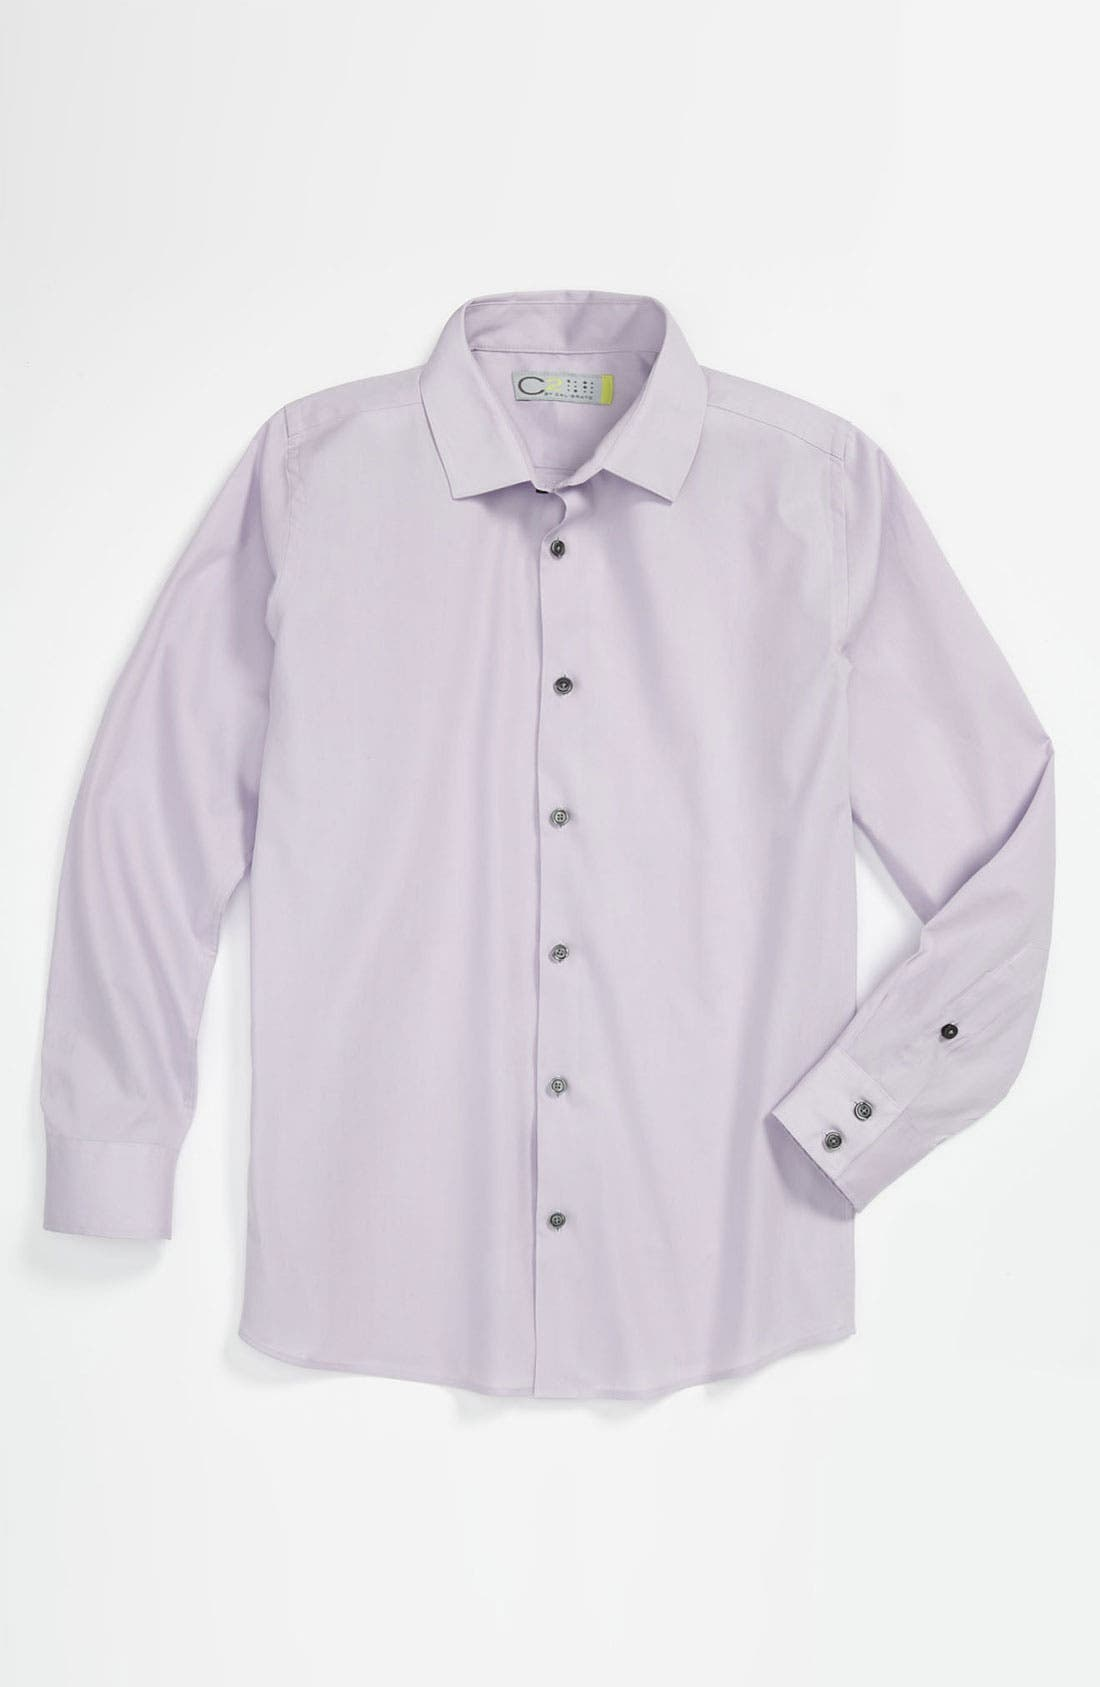 Main Image - C2 by Calibrate Dress Shirt (Little Boys & Big Boys)